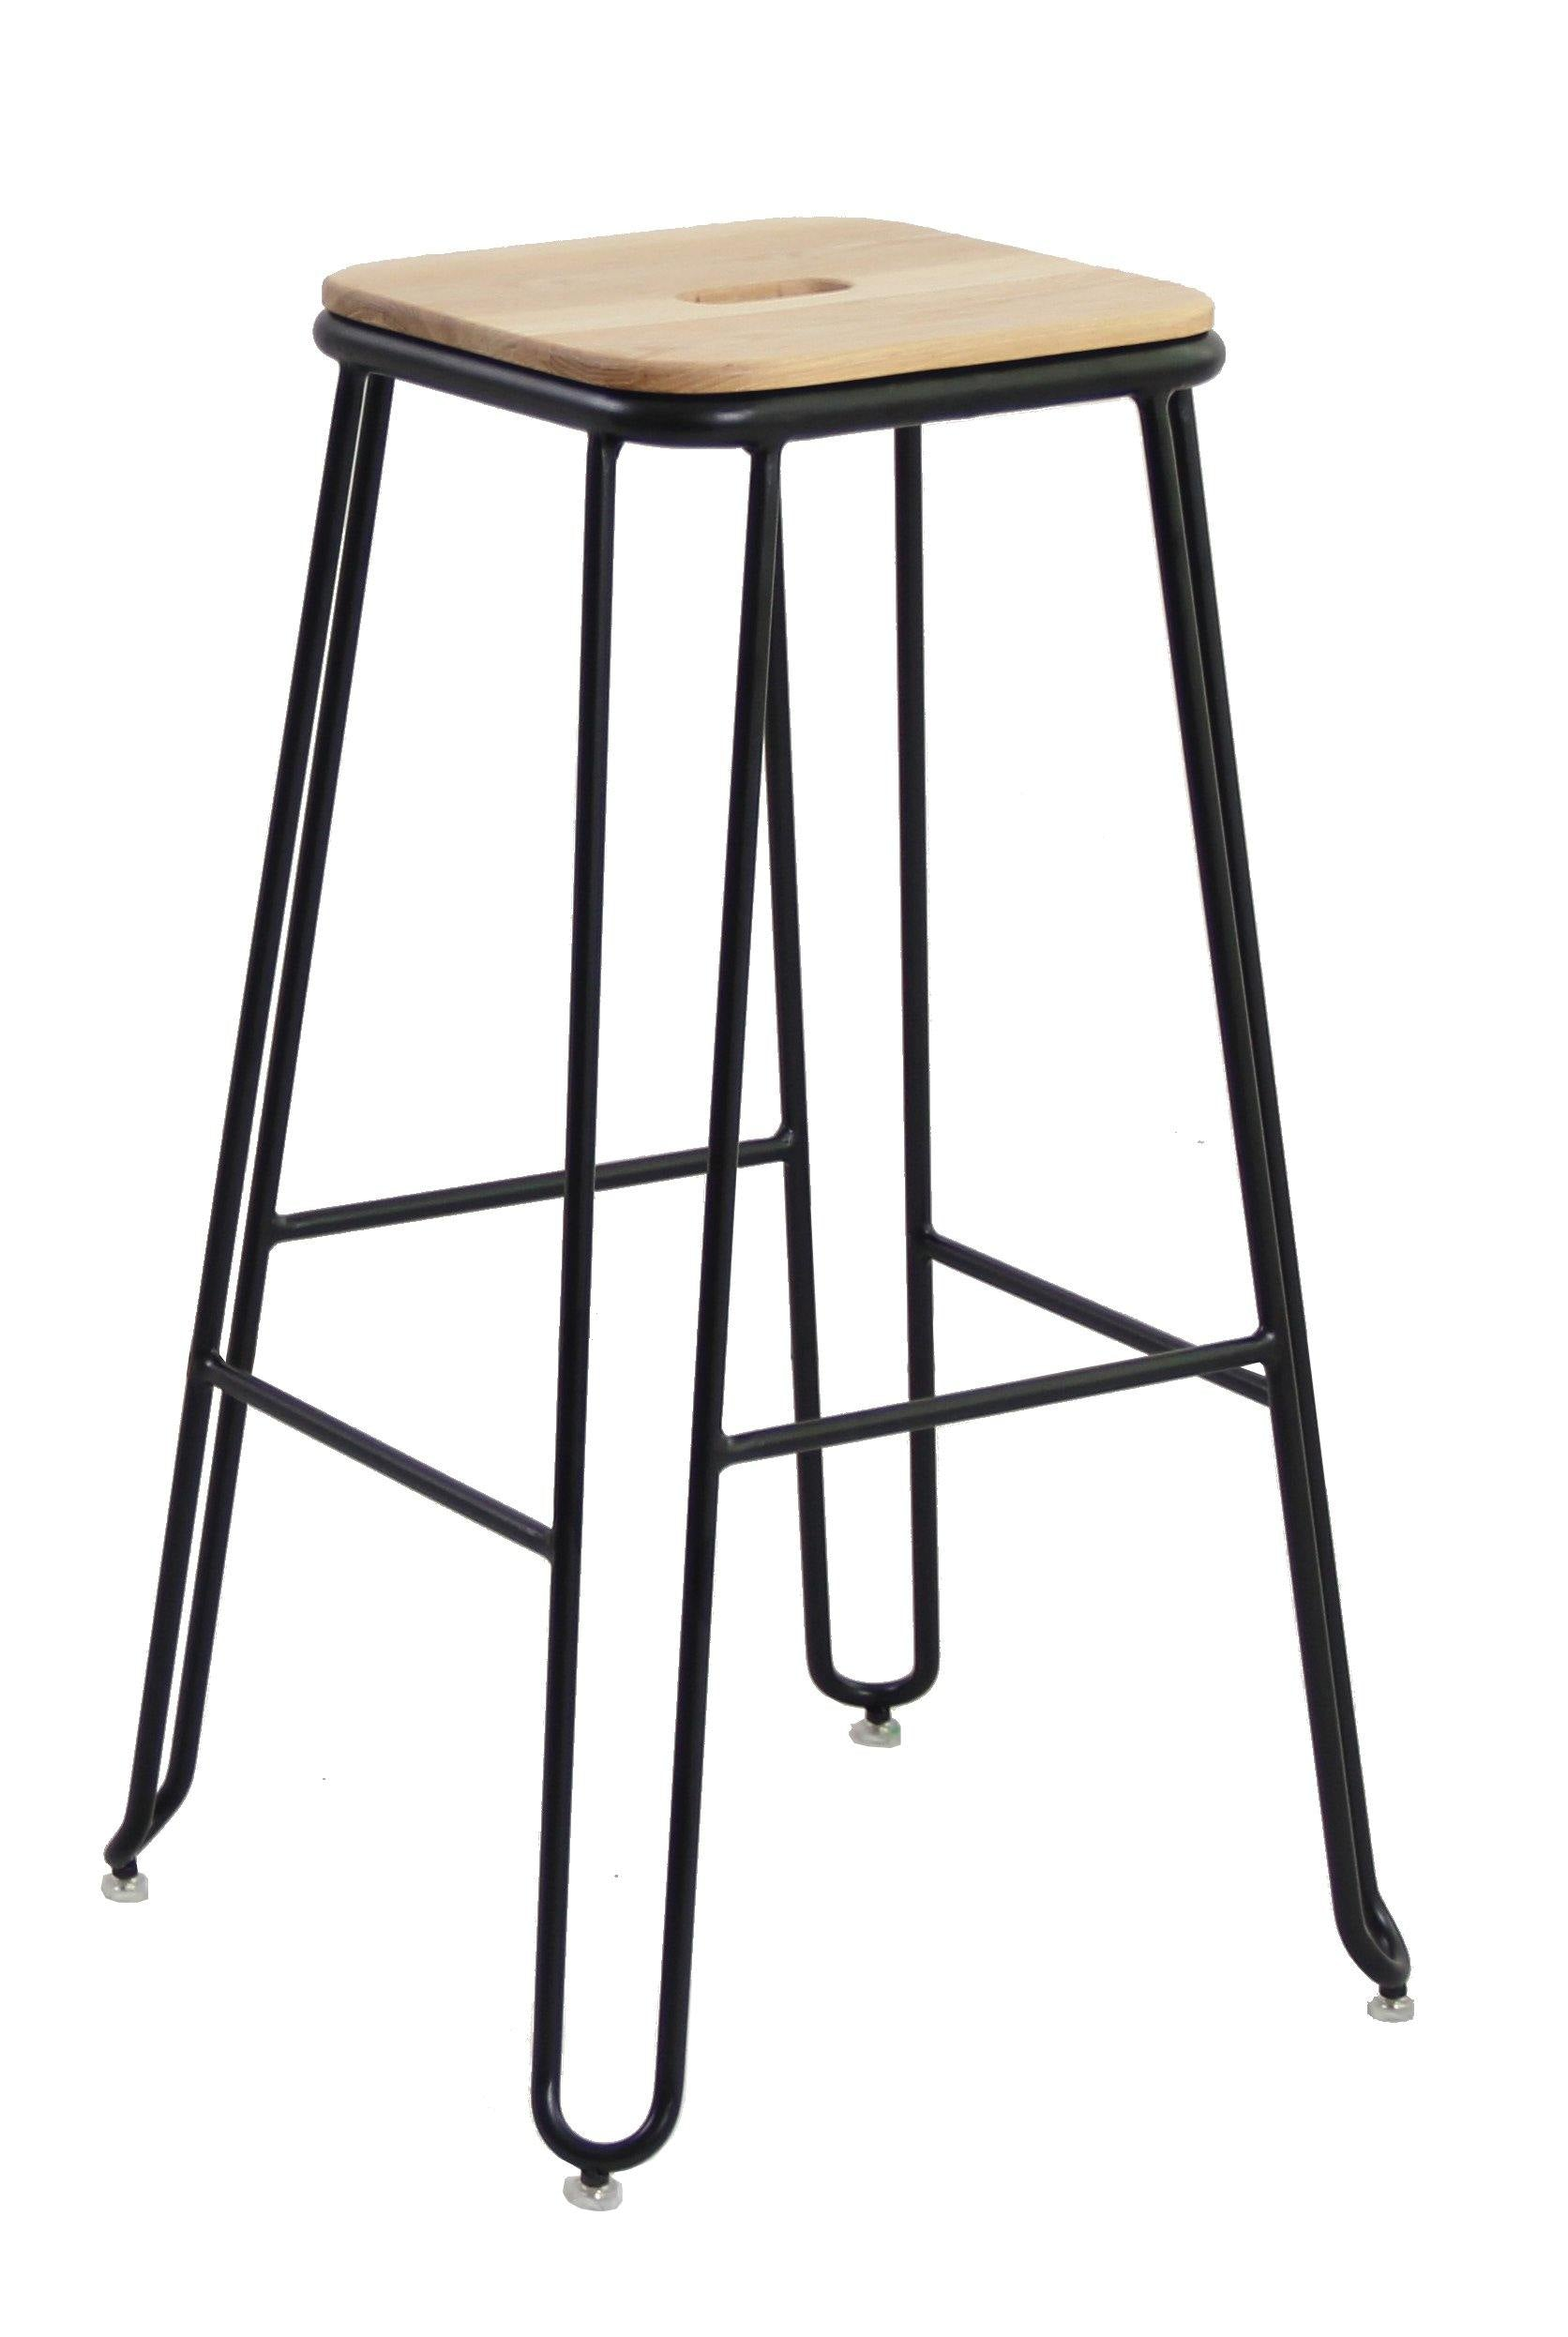 Ash Wood & Steel Industrial Bar Stool - Evopia